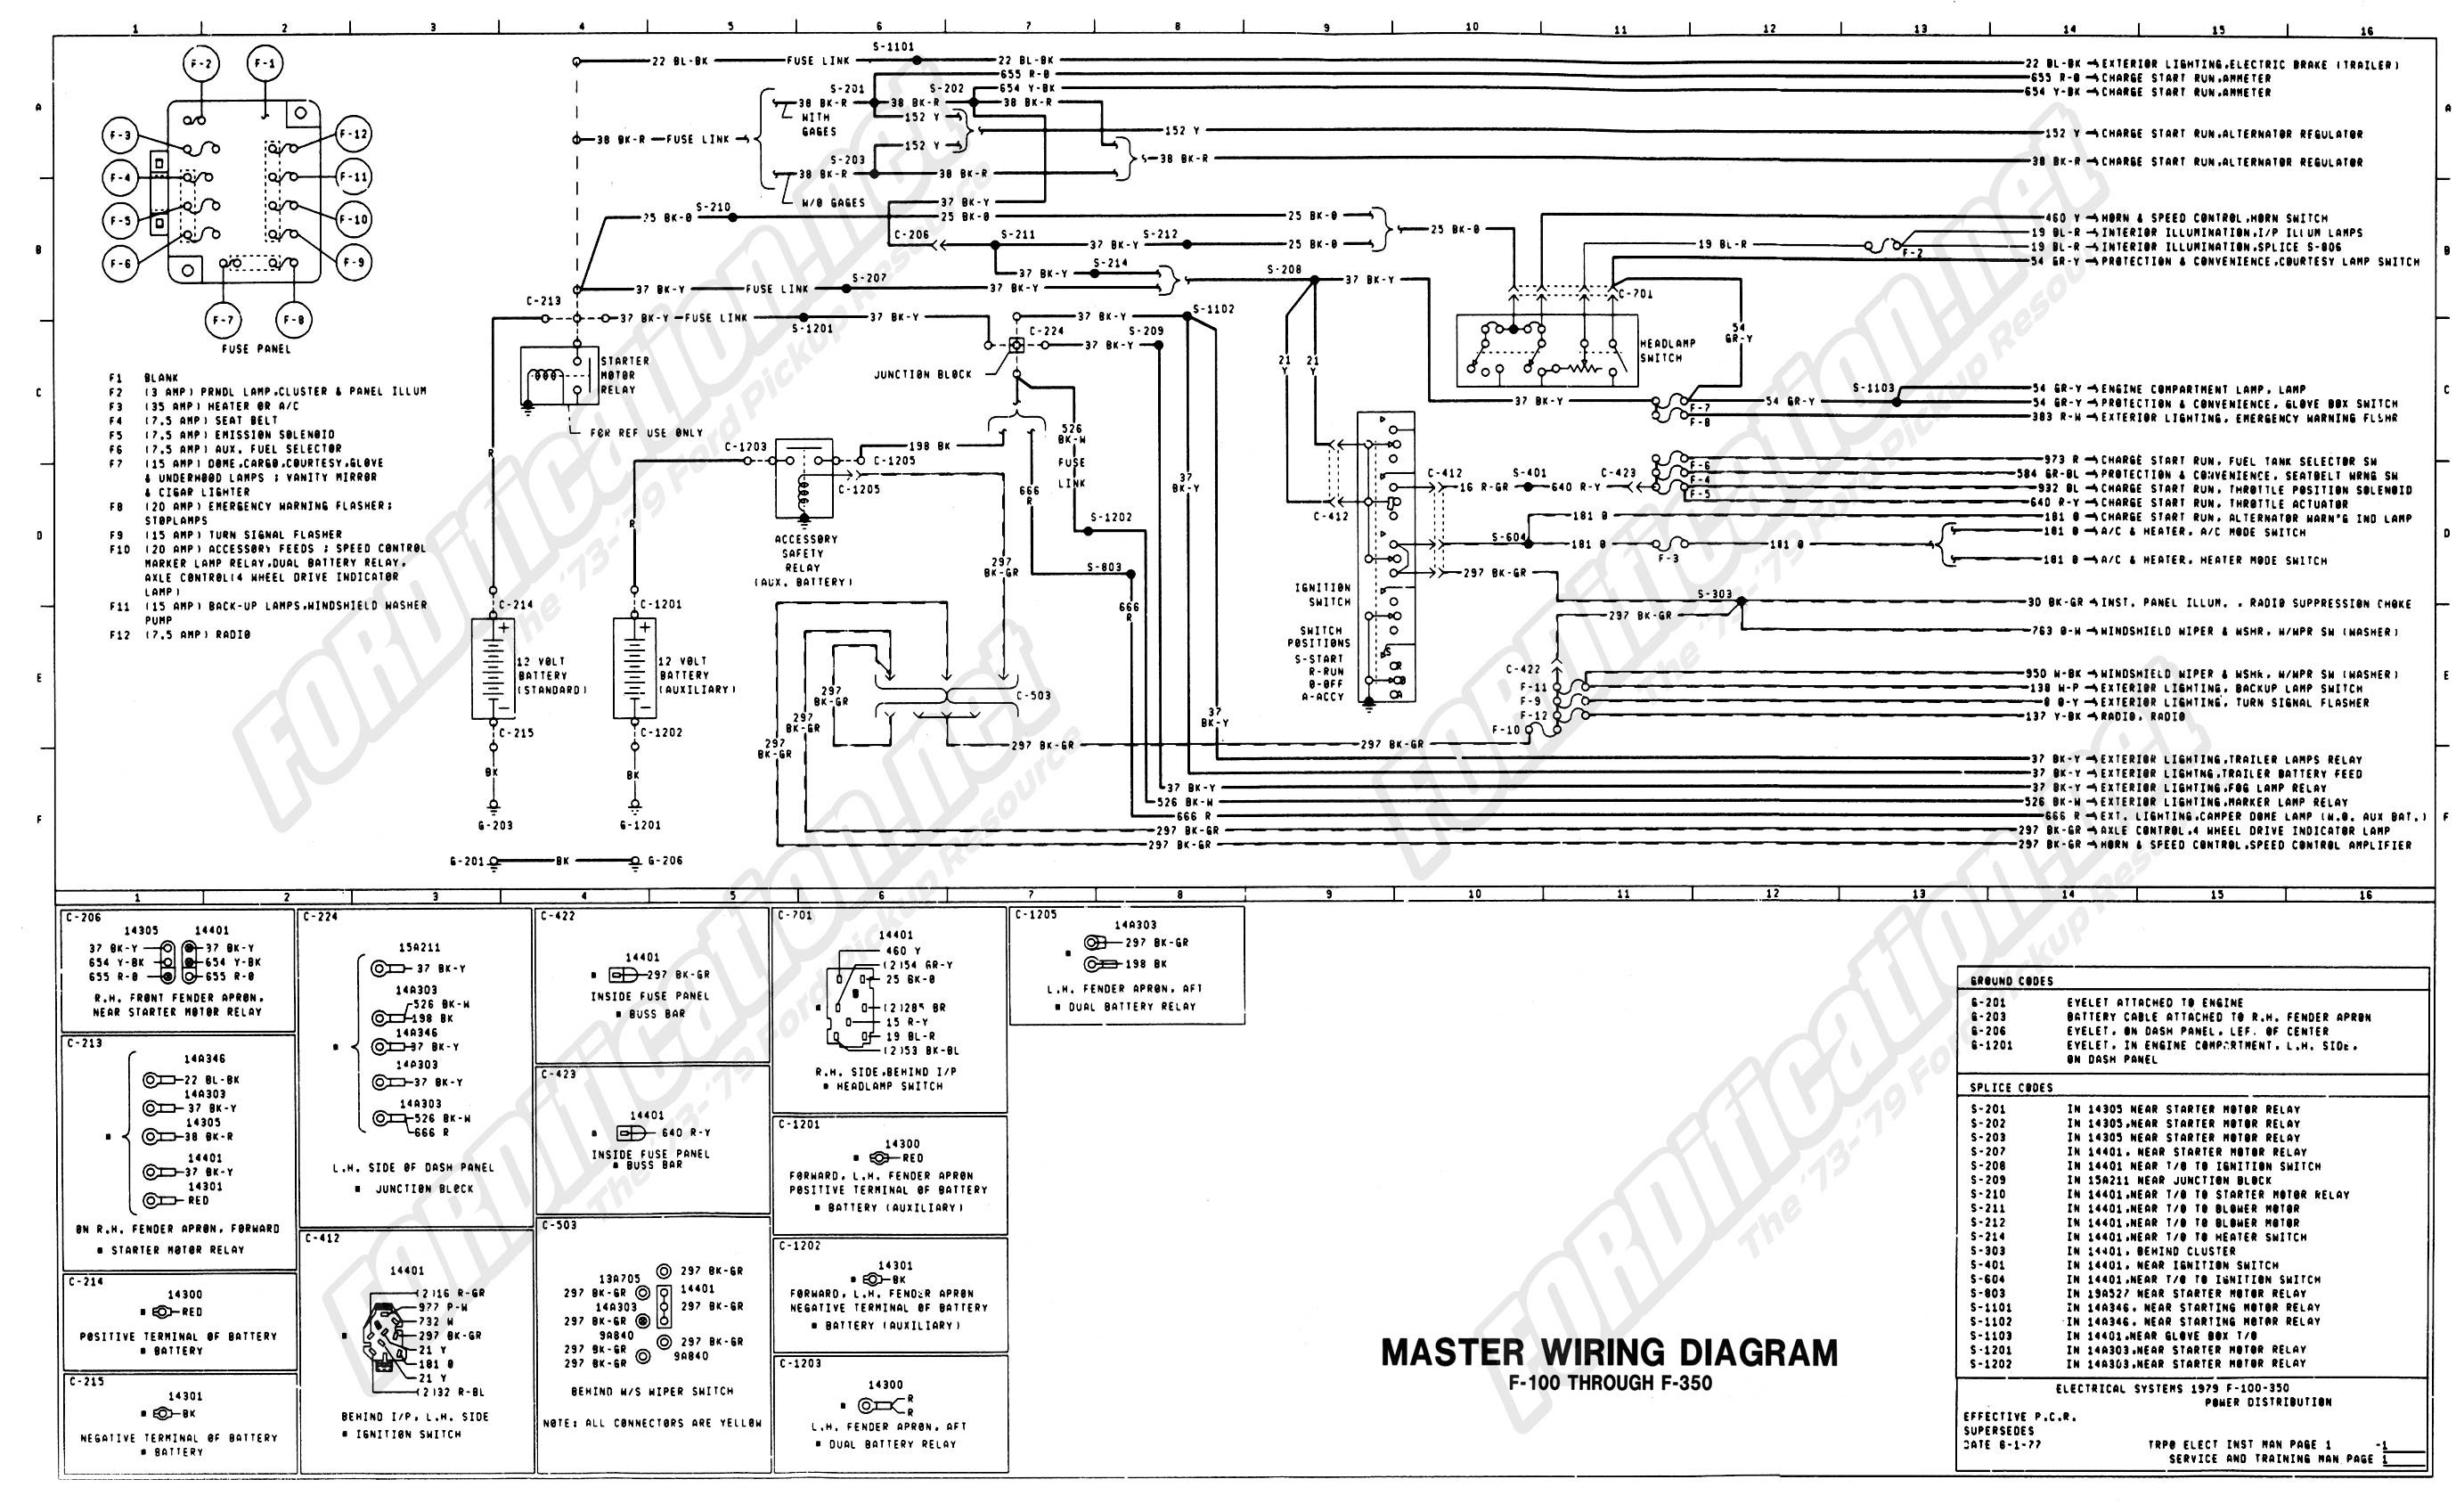 Printable Trailer Lights Wiring Diagram Electrical Calico Trailers For Truck To Dodge Ram 2500 Plug